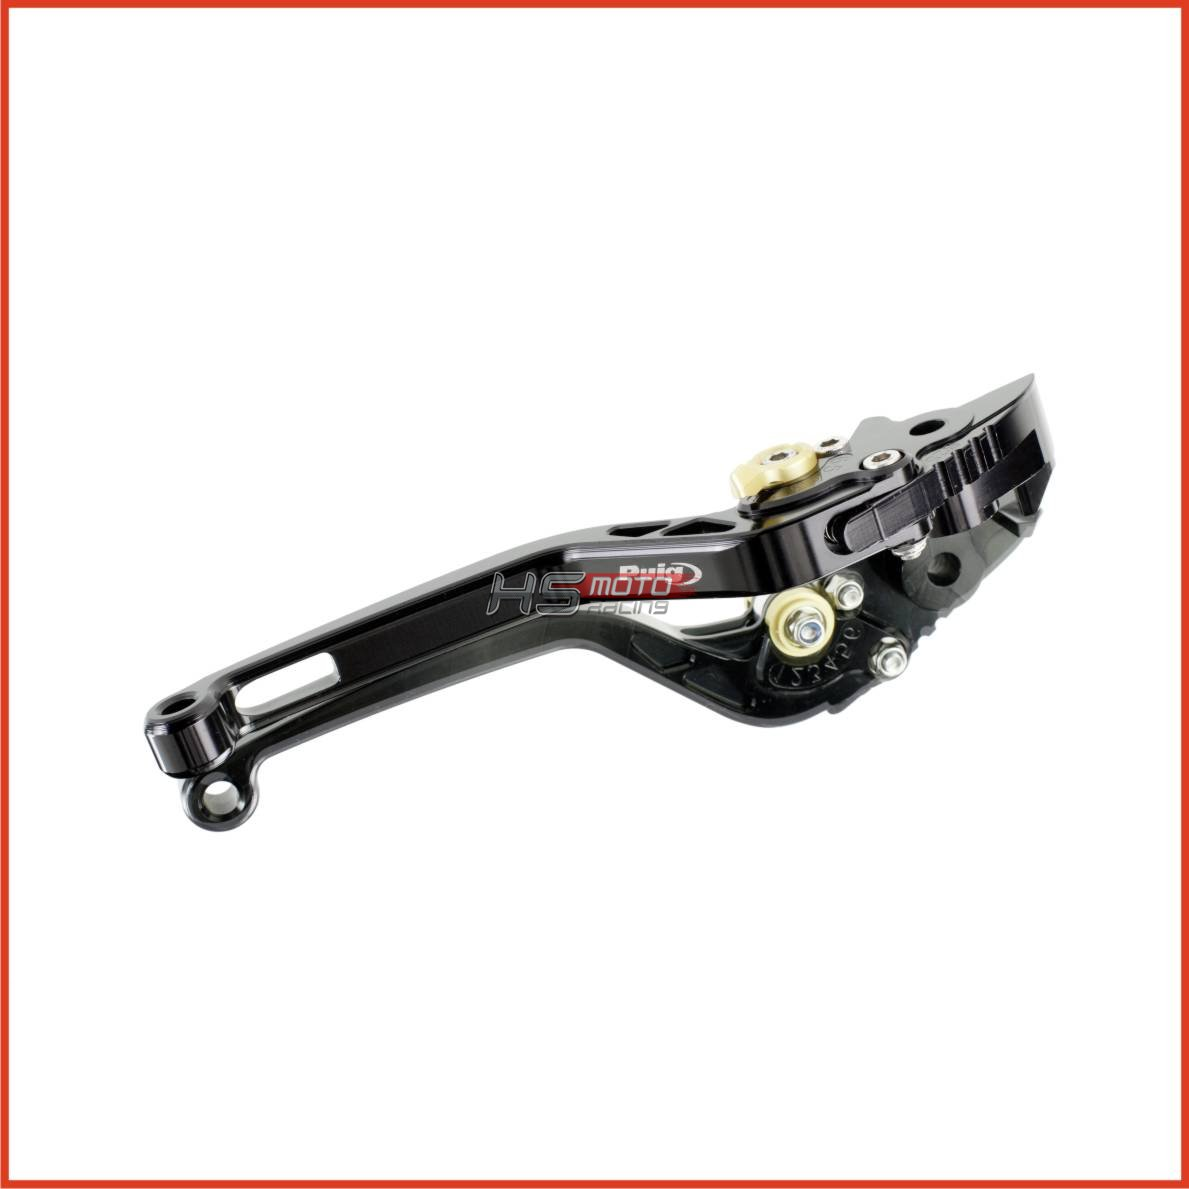 Details about  /160A Puig Handle Brake with Fitting Flip-Up Selector Colour Yamaha XJR 1200